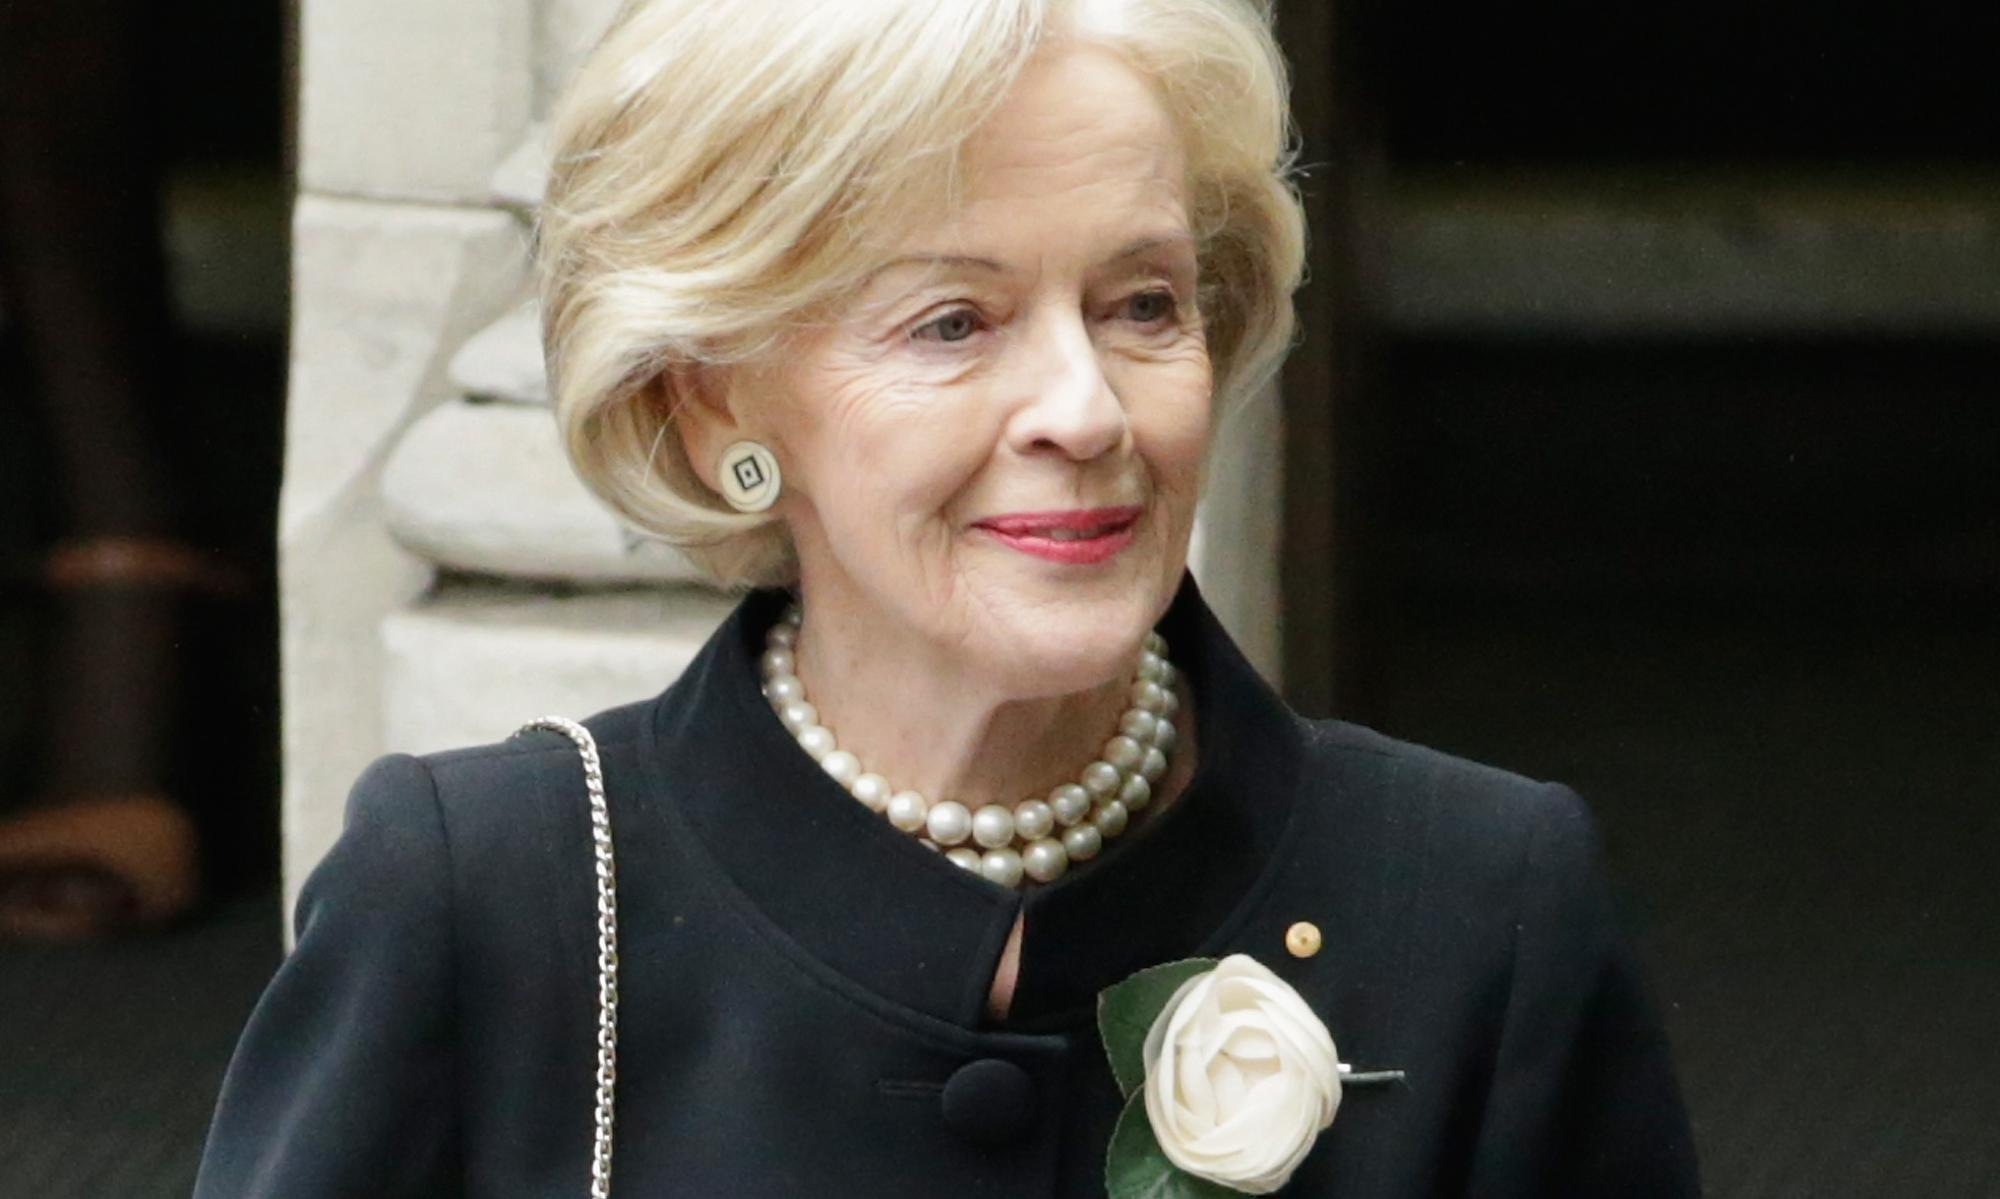 Quentin Bryce urges focus on gender inequality to tackle domestic violence